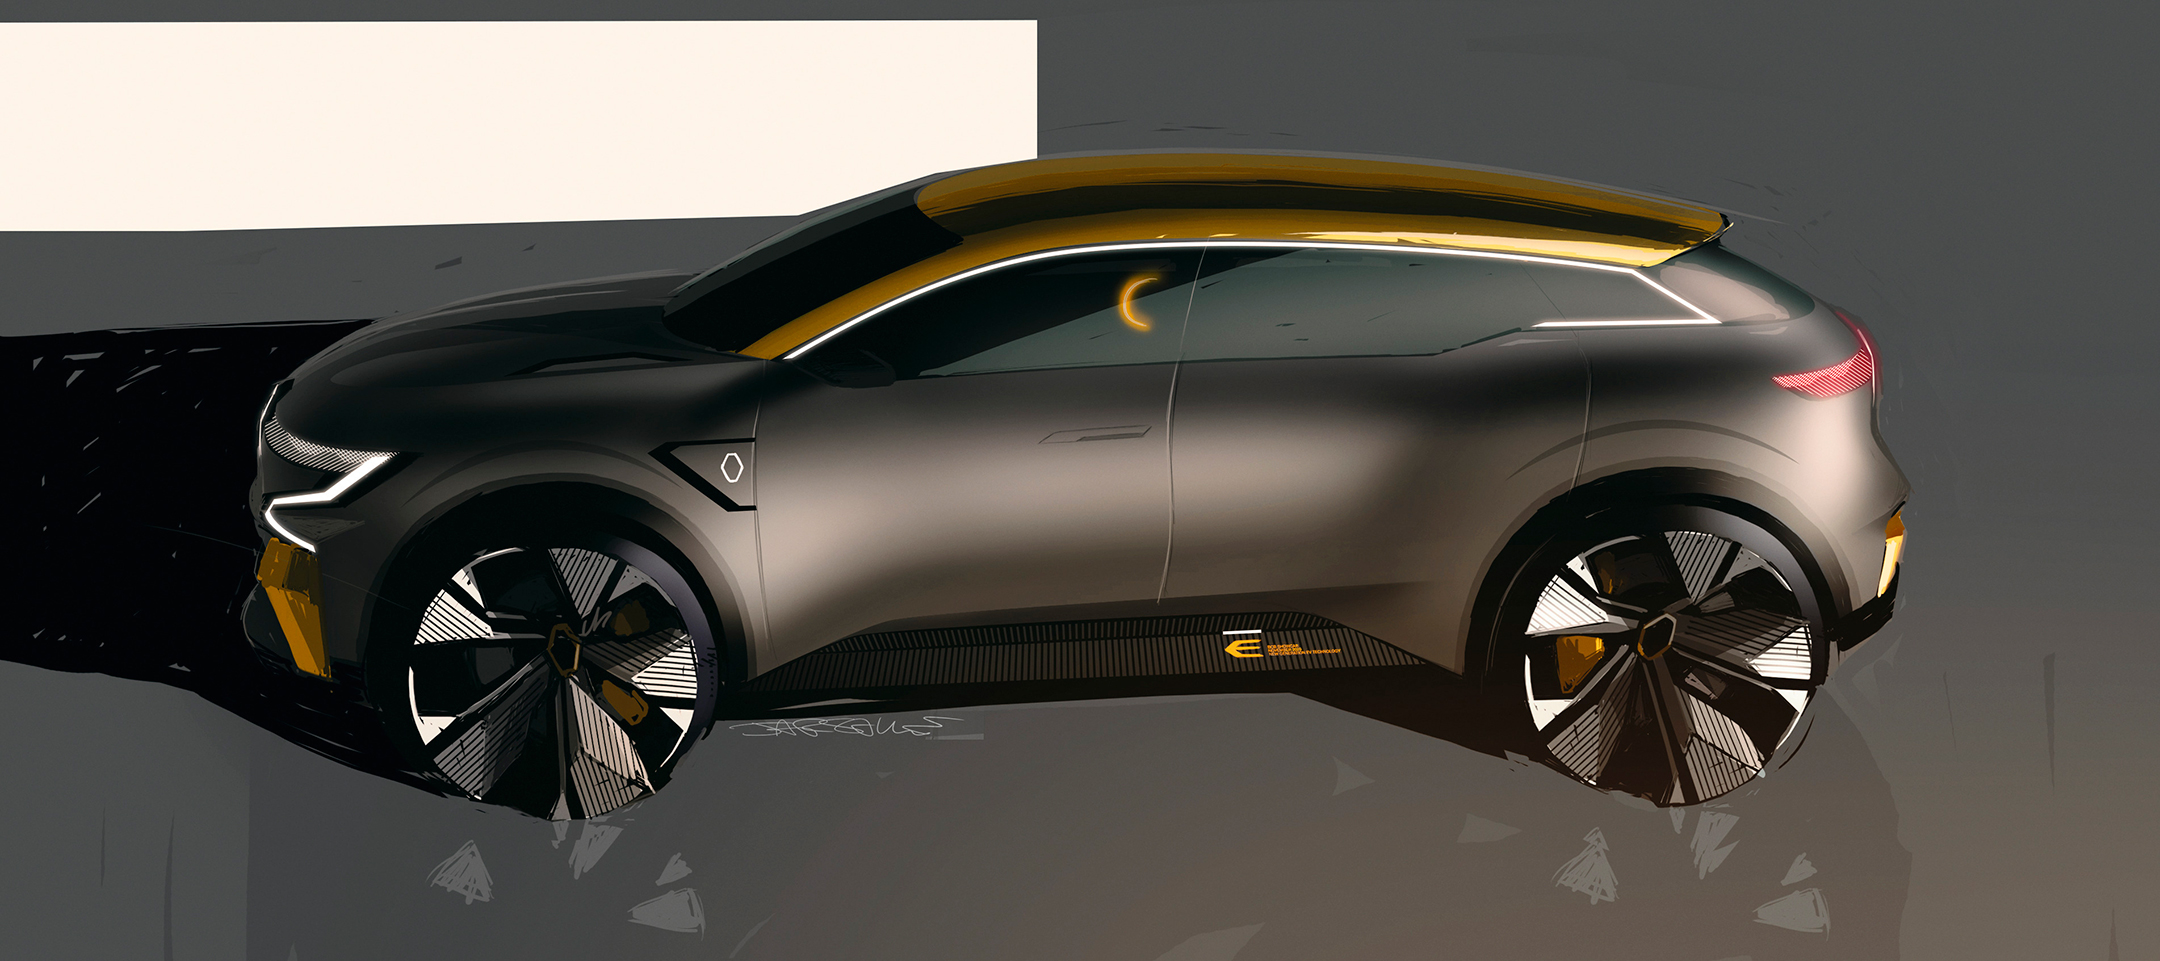 Renault Mégane eVision show-car - 2020 - drawing sketch - side-face / profil